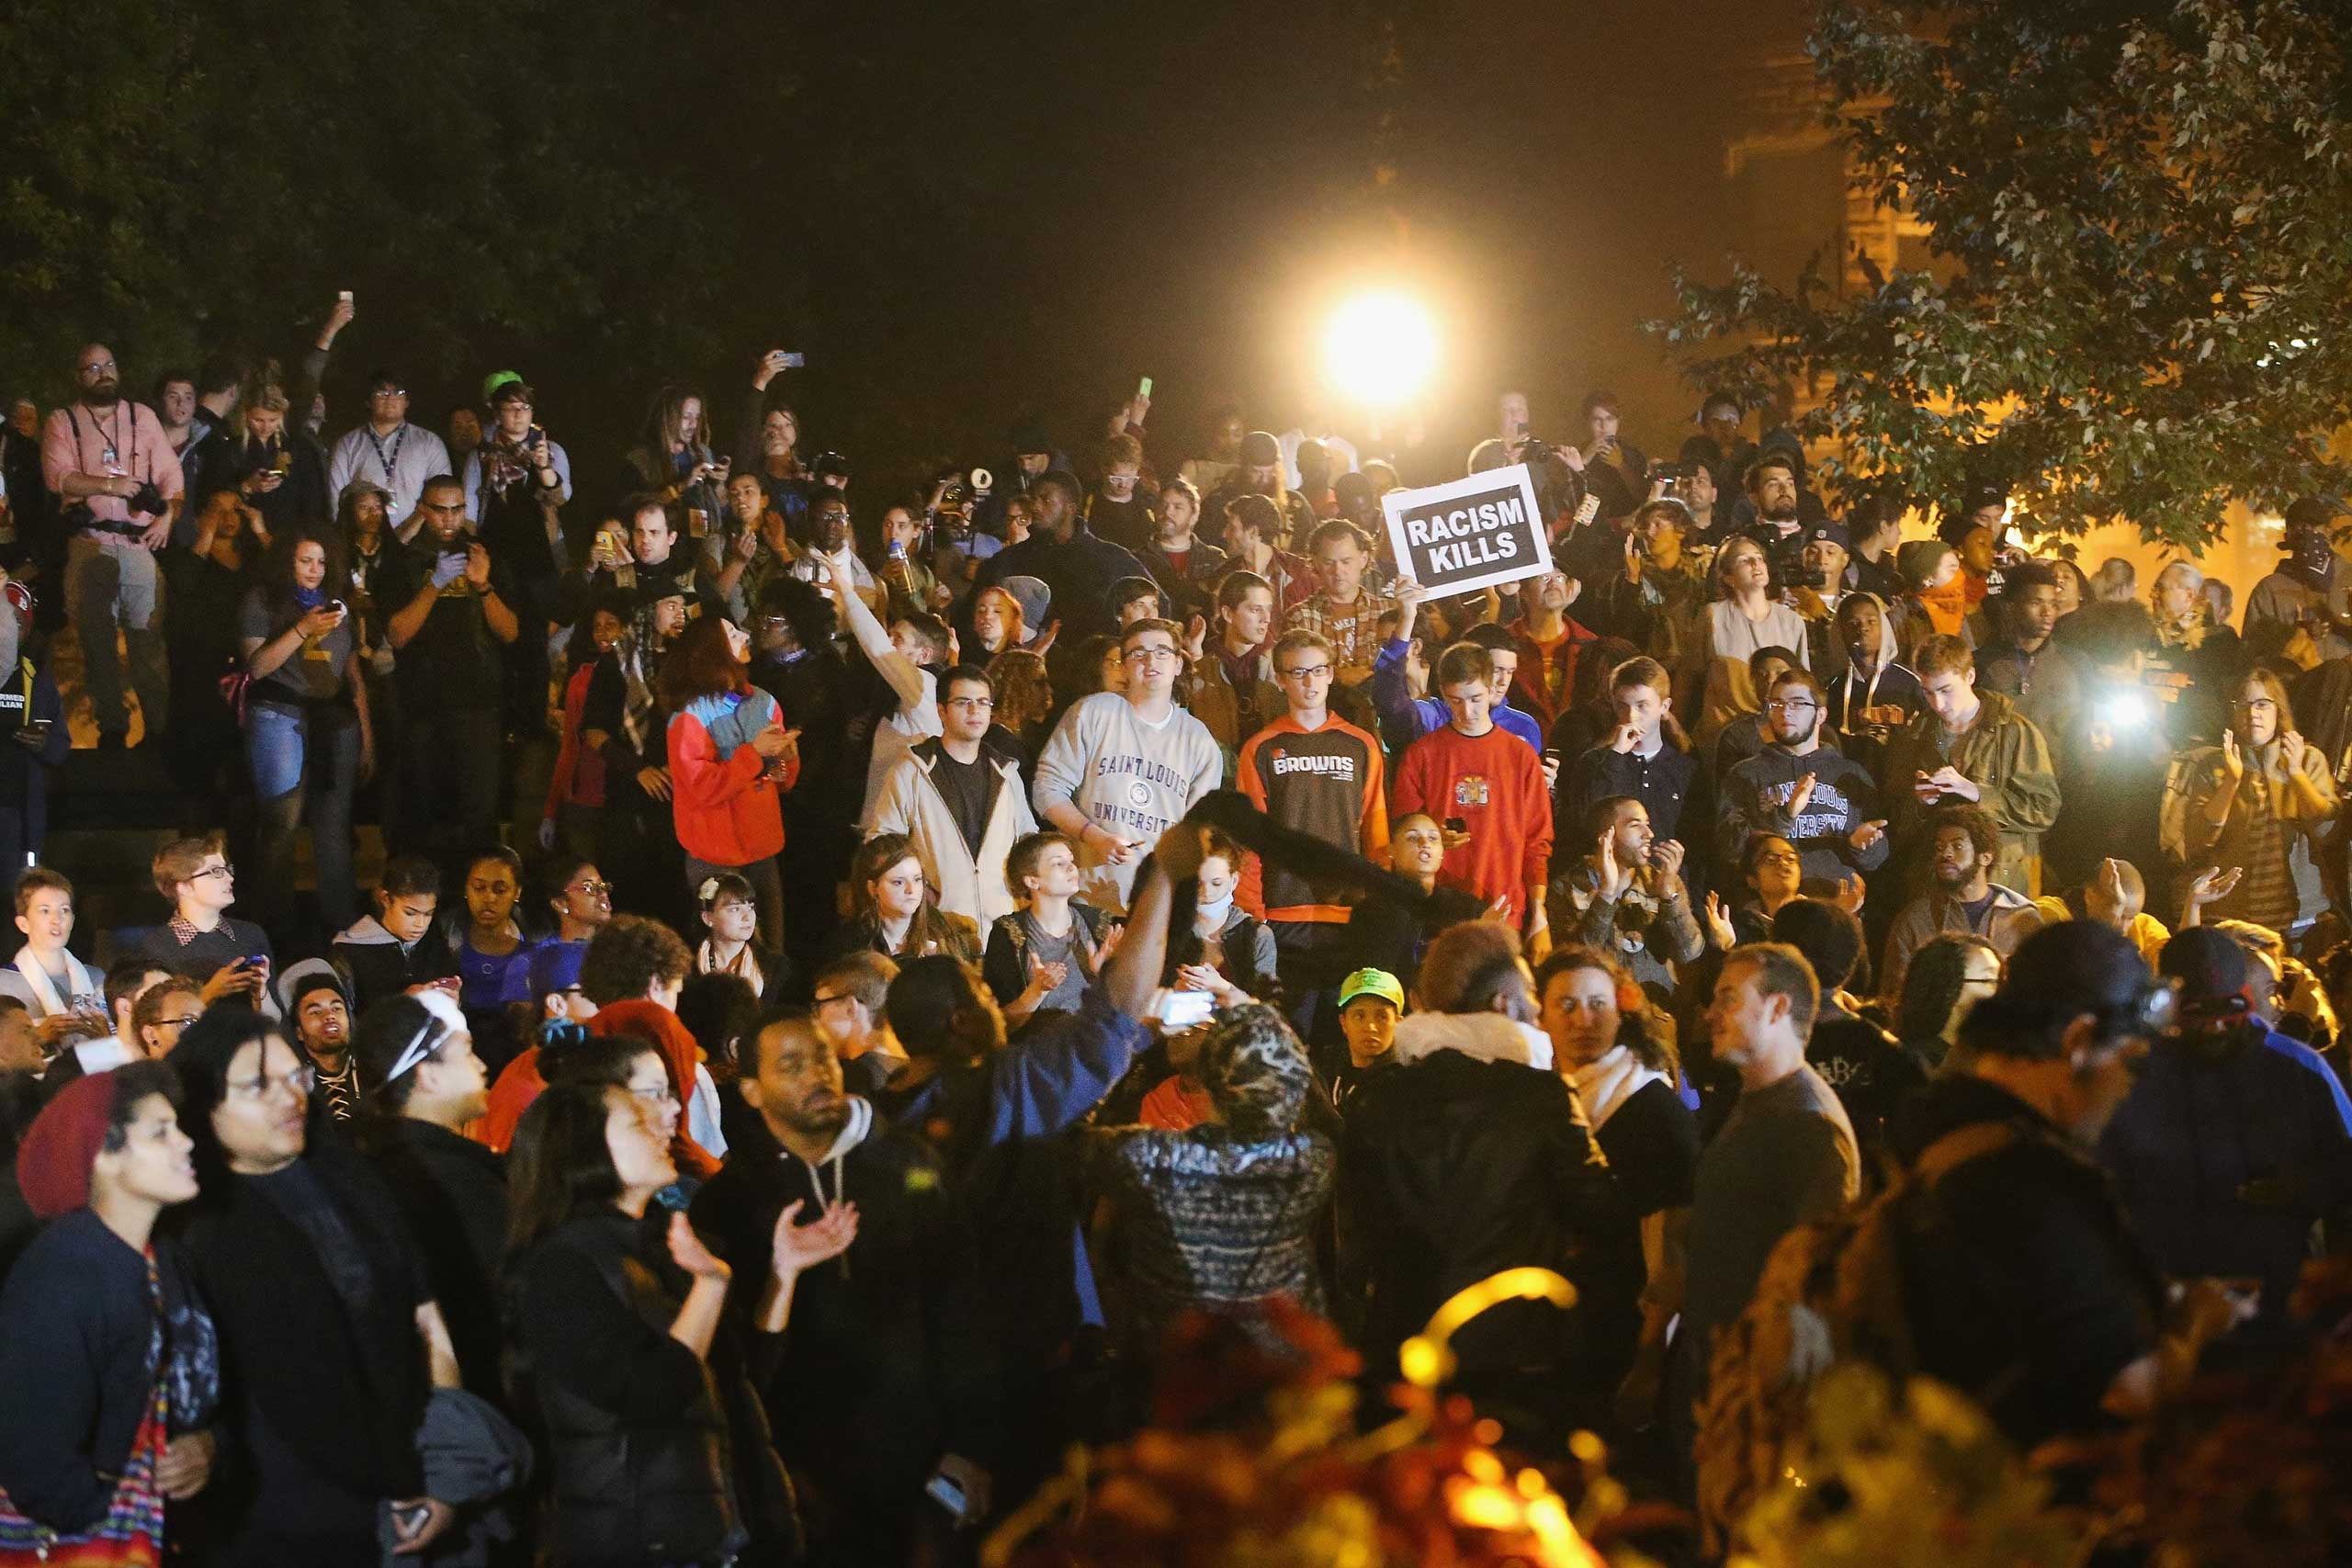 Demonstrators listen to speakers during a rally on the campus of St. Louis University in St. Louis on Oct. 13, 2014.